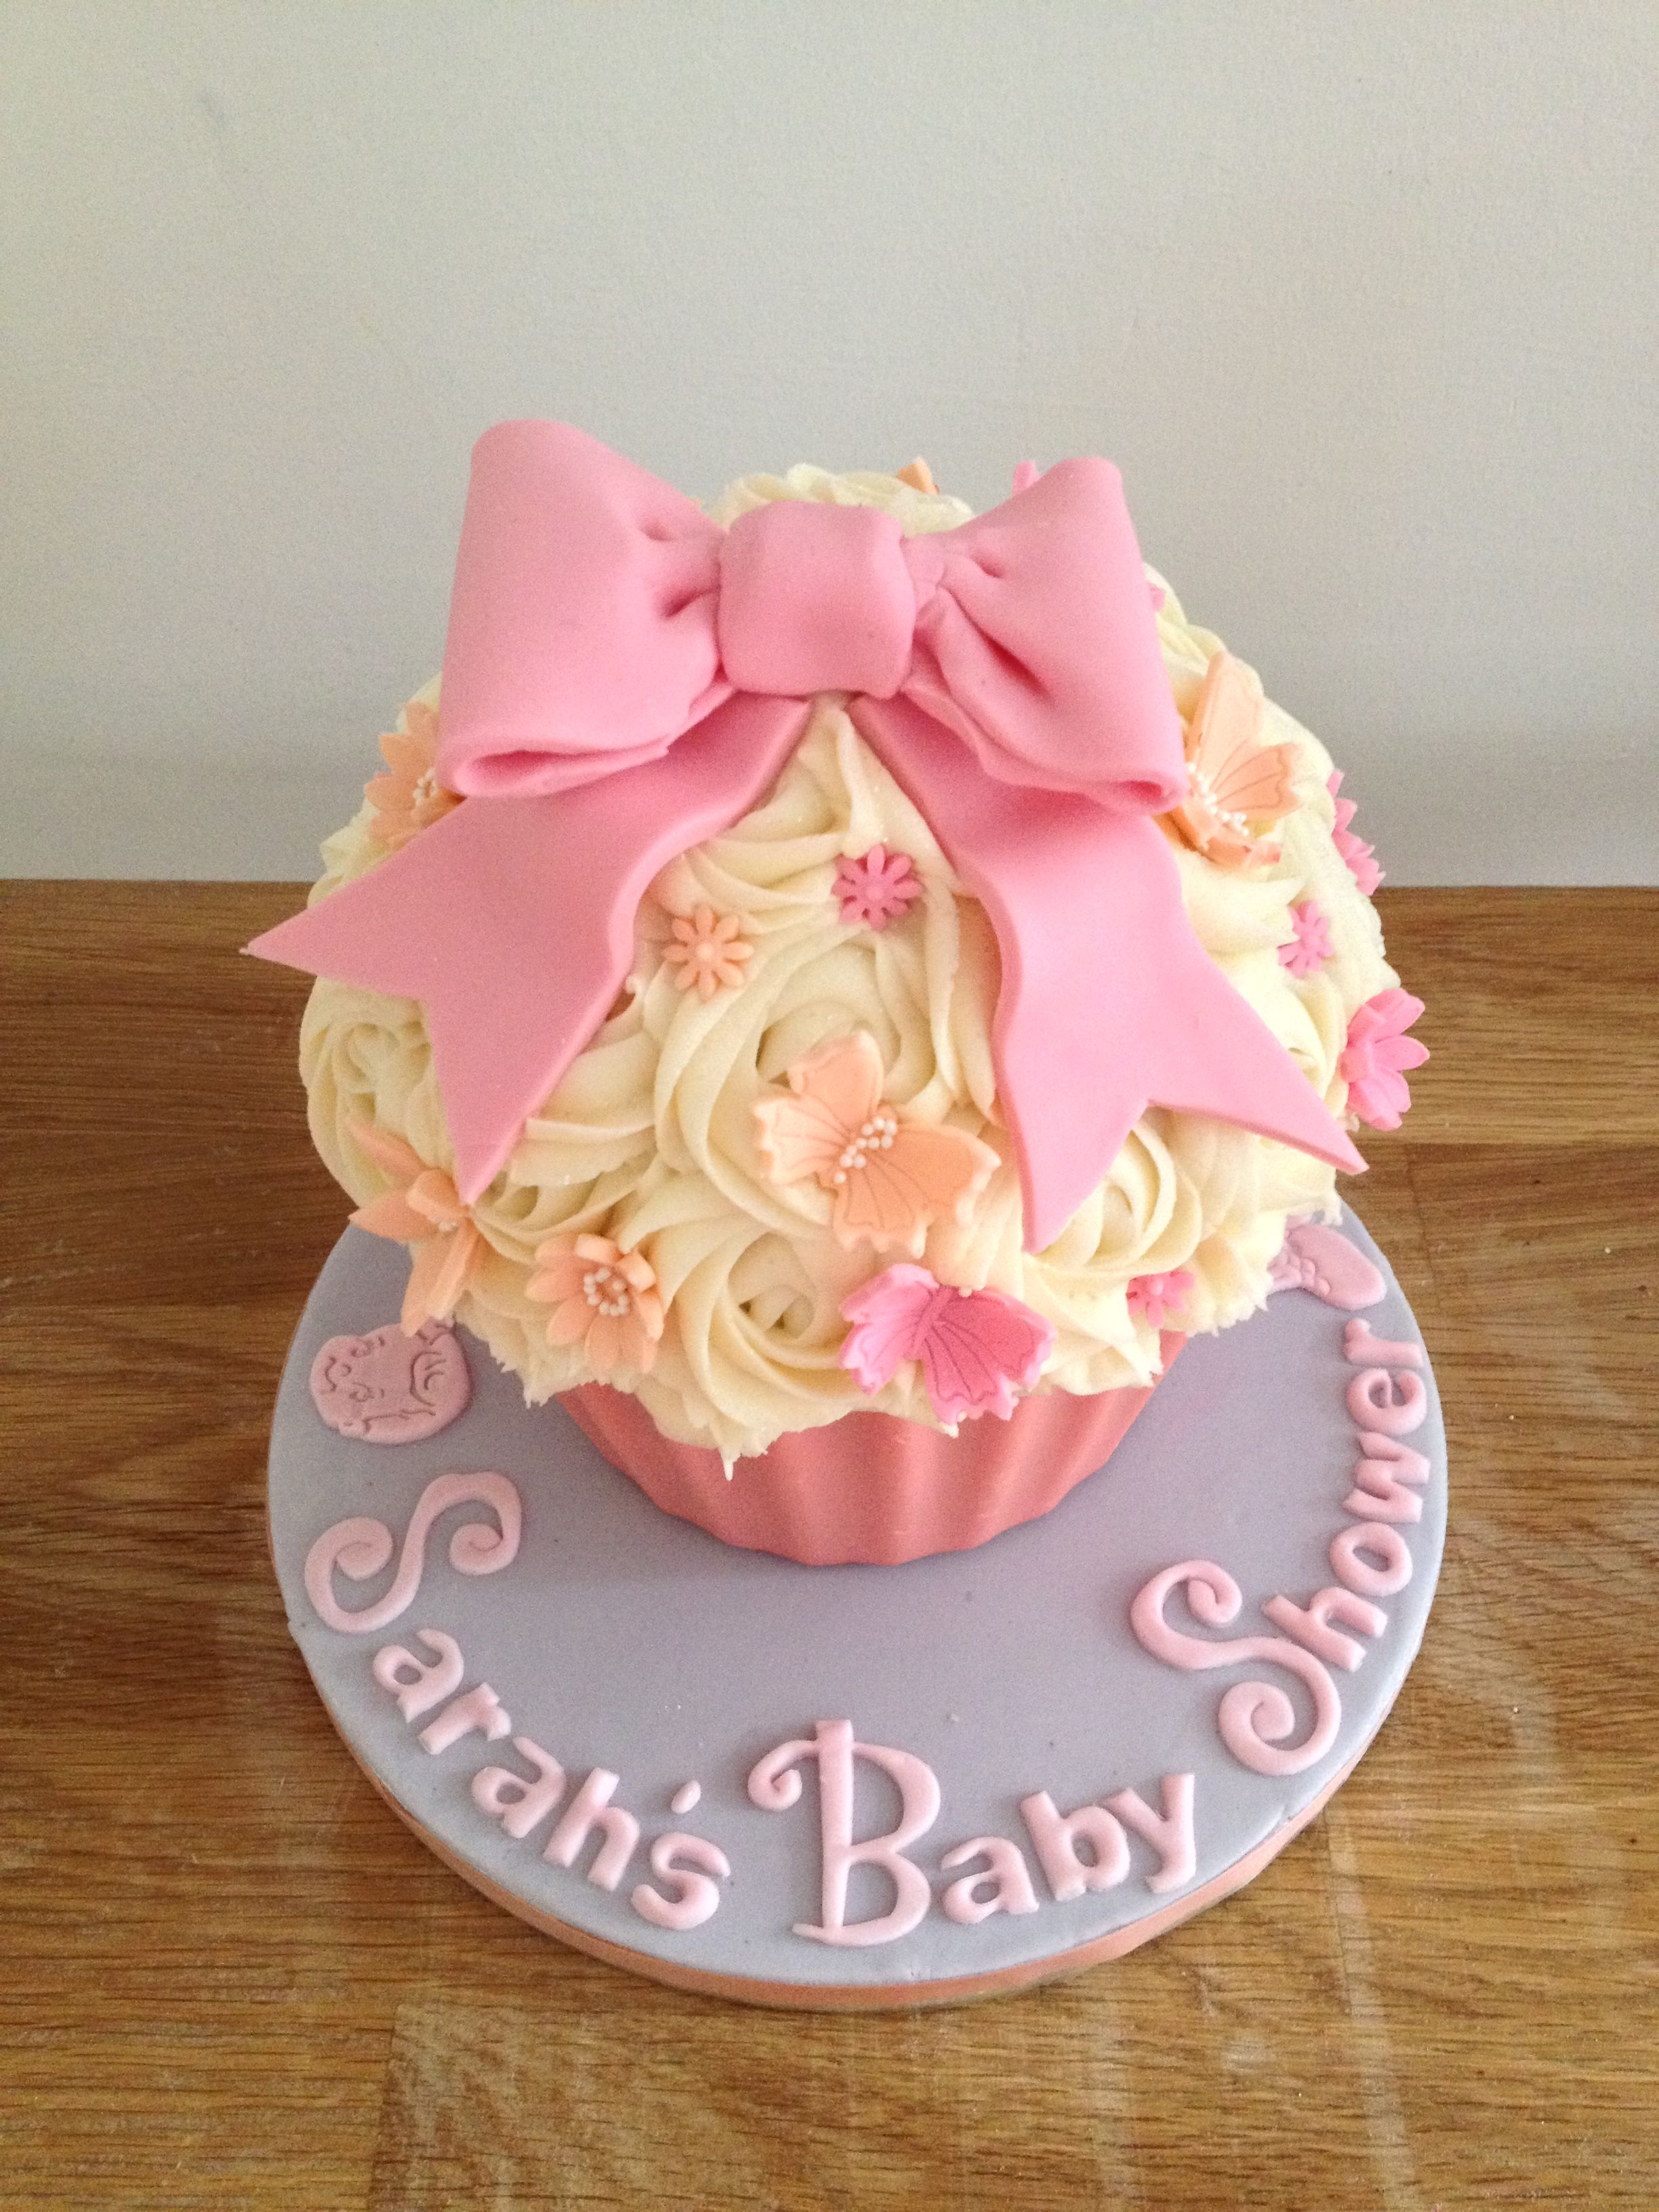 Baby Shower Giant Cupcake Cake Pink Bow By Candyscupcakes